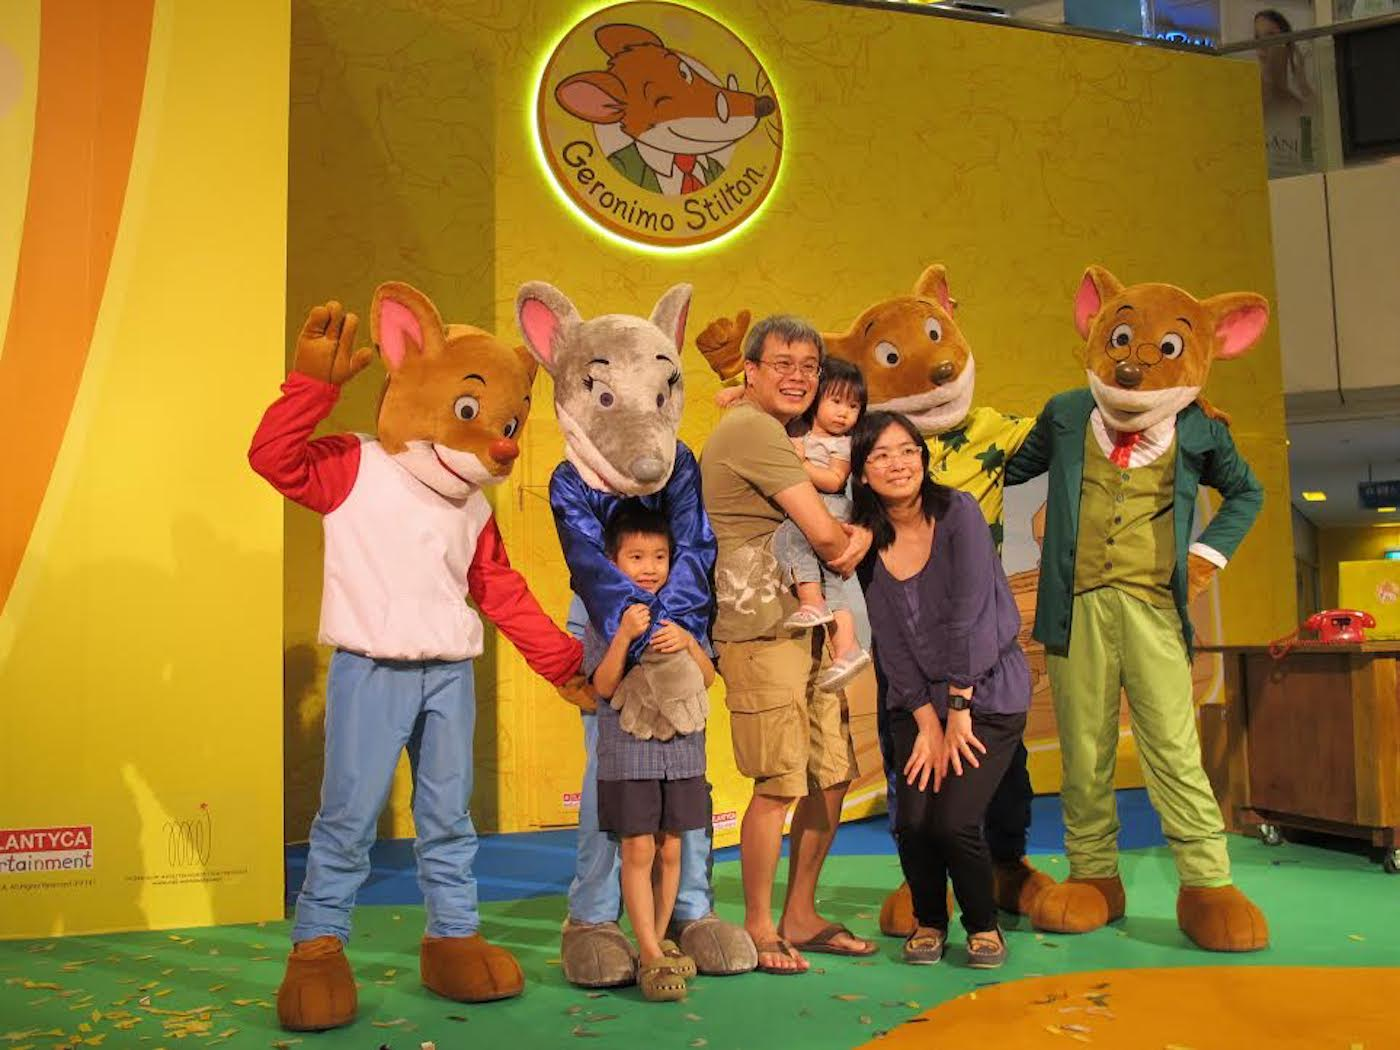 Get ready for a Fabumouse family Christmas at Forum The Shopping Mall with Geronimo Stilton!